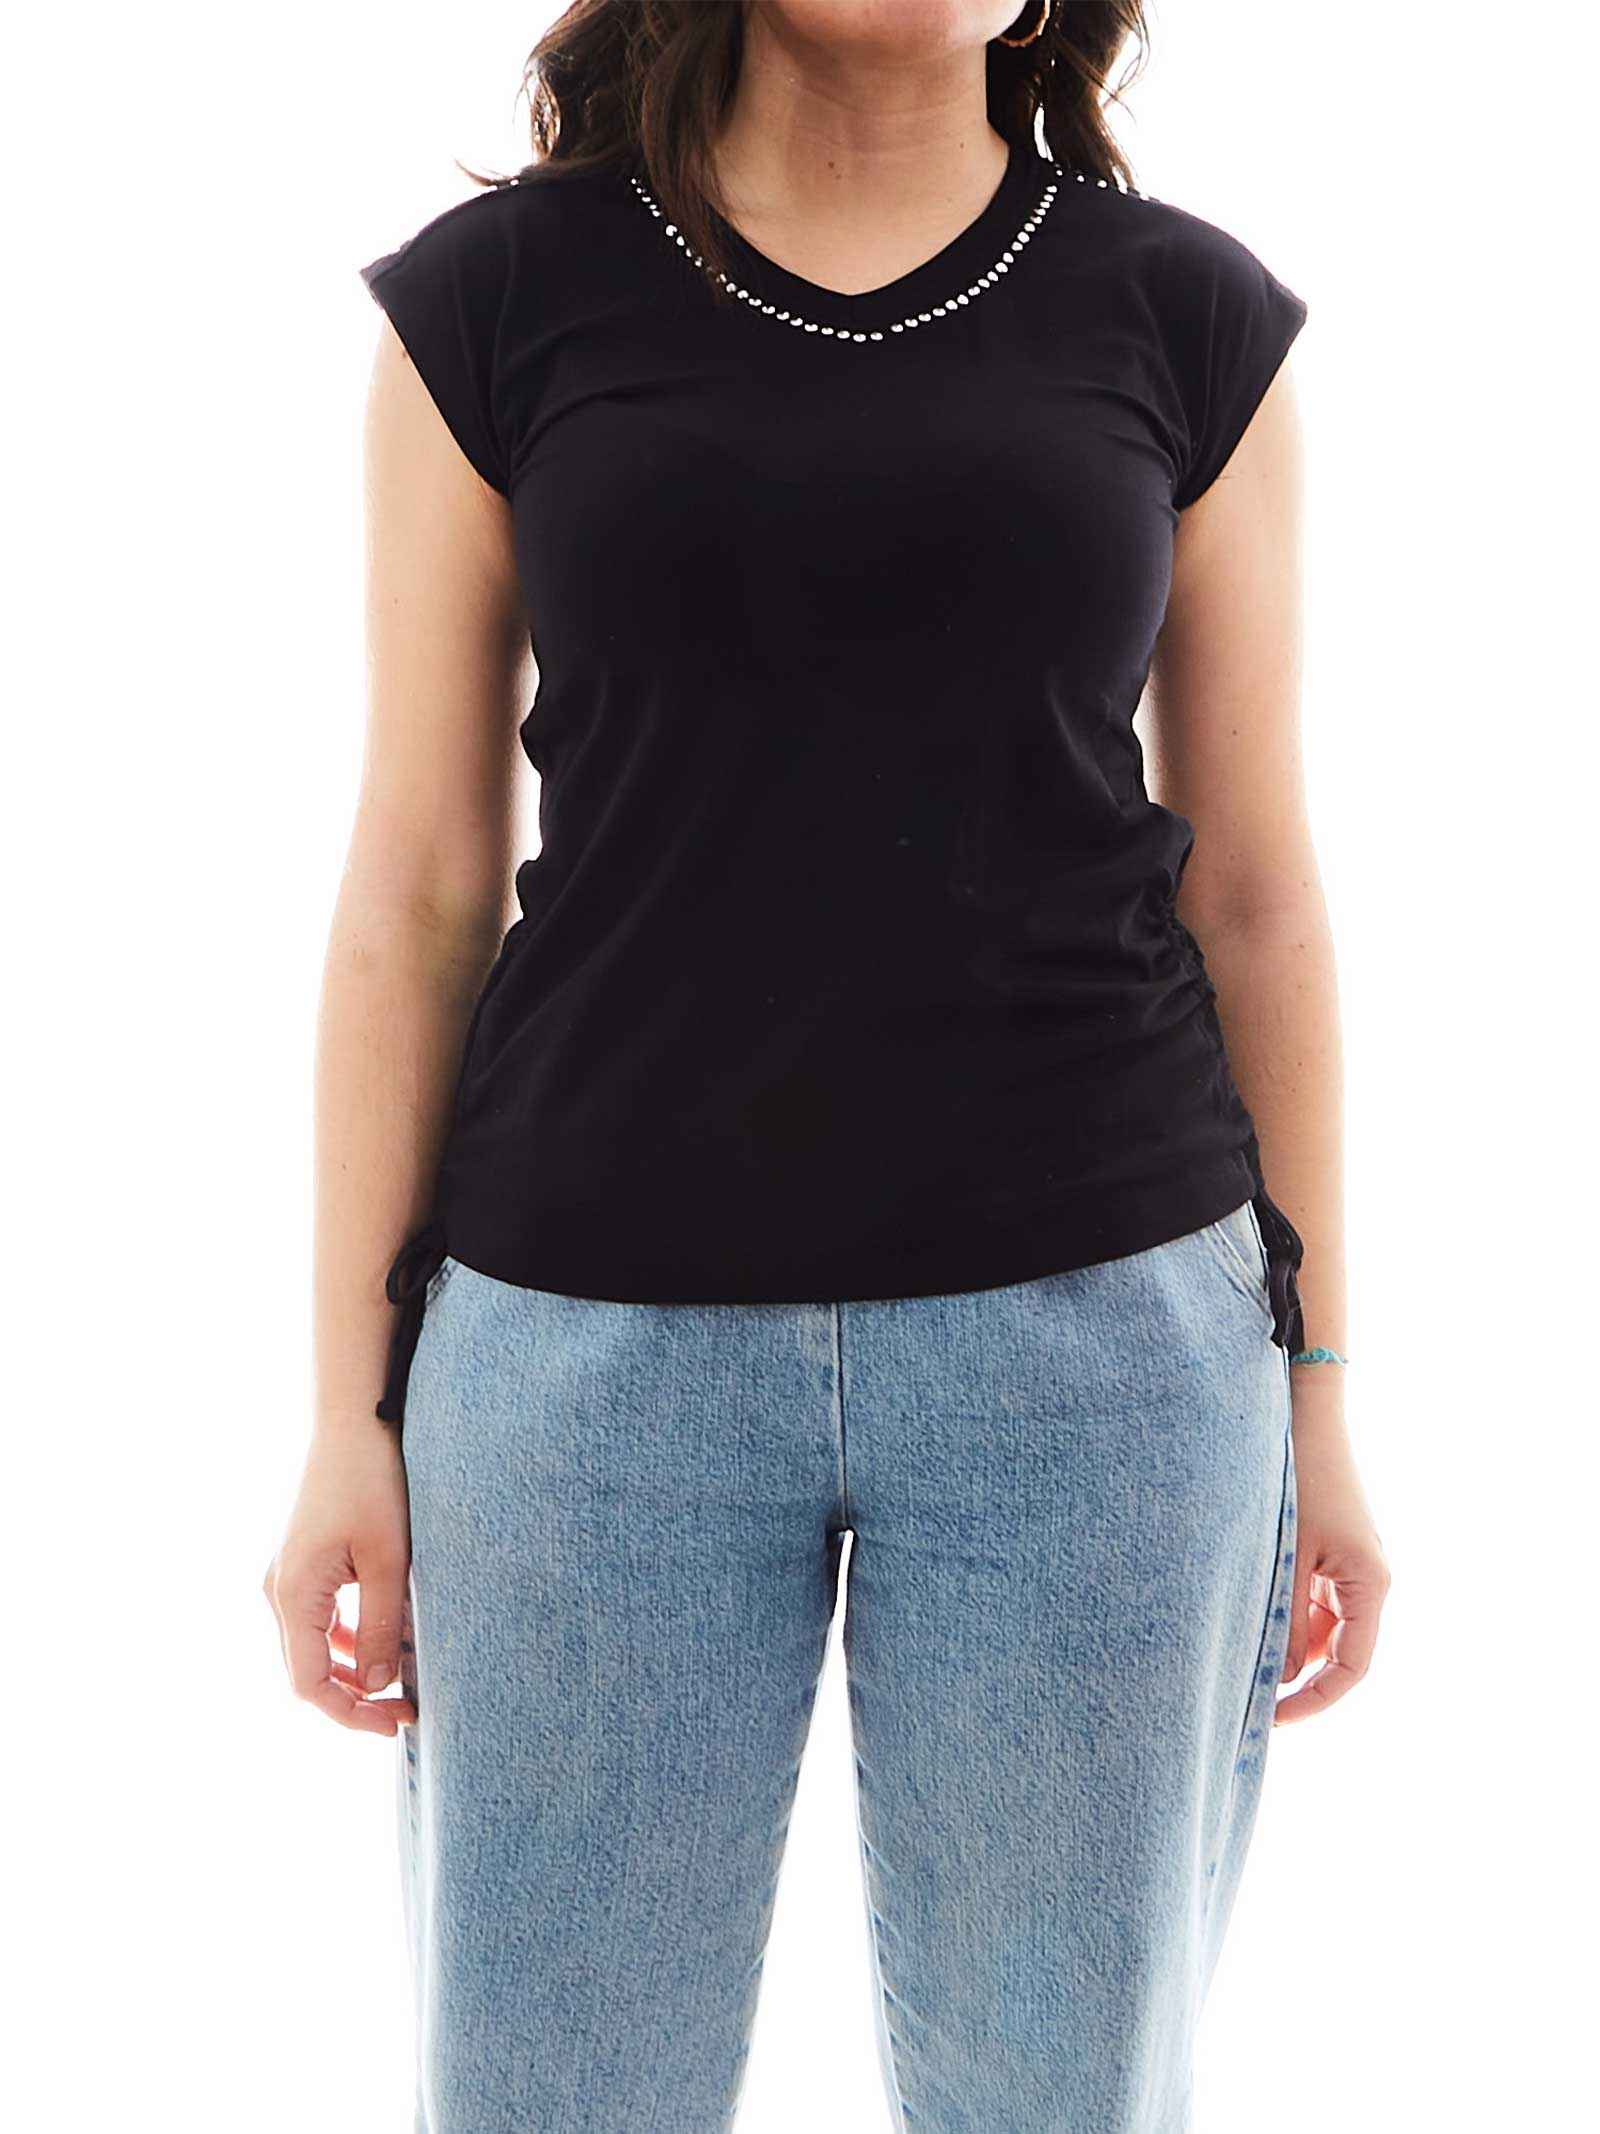 T-SHIRT DONNA YES ZEE   T-shirt   T233-S2000801